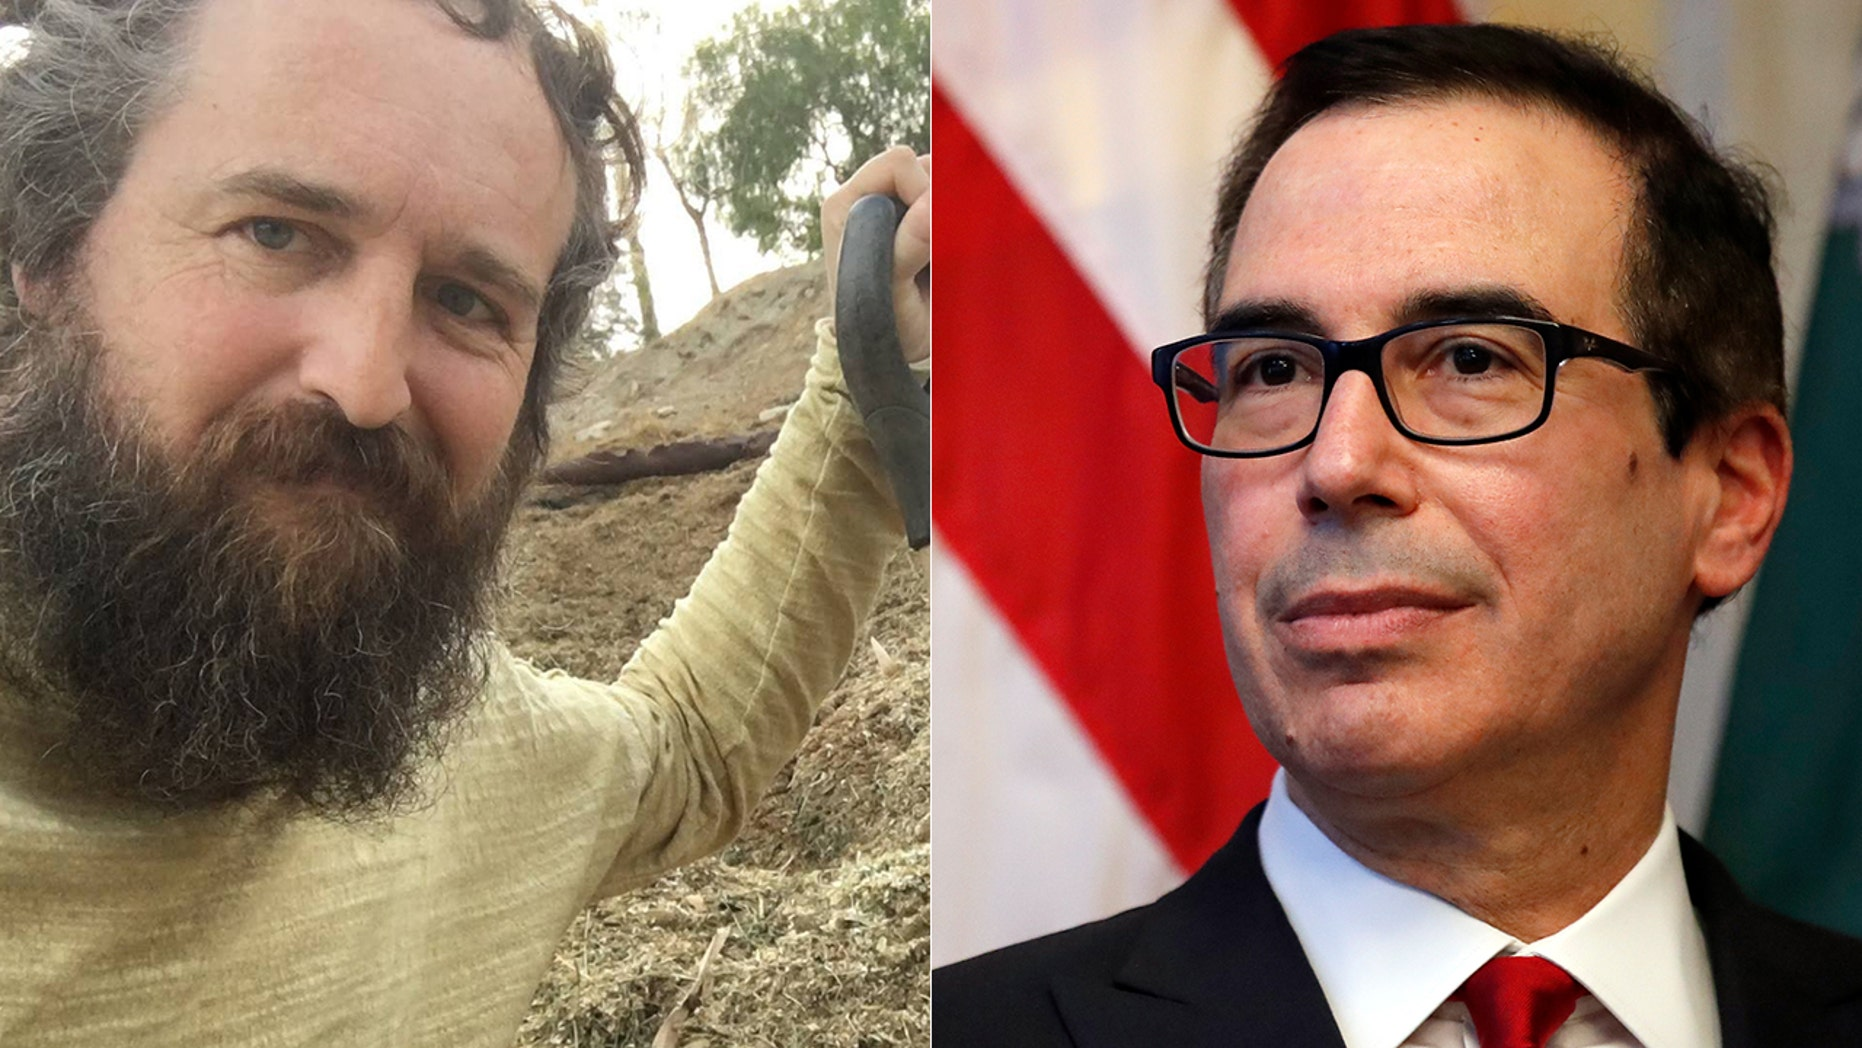 Robby Strong, left, claims he's the one behind the gift-wrapped package left outside Treasury Secretary Mnuchin's home that caused a stink.